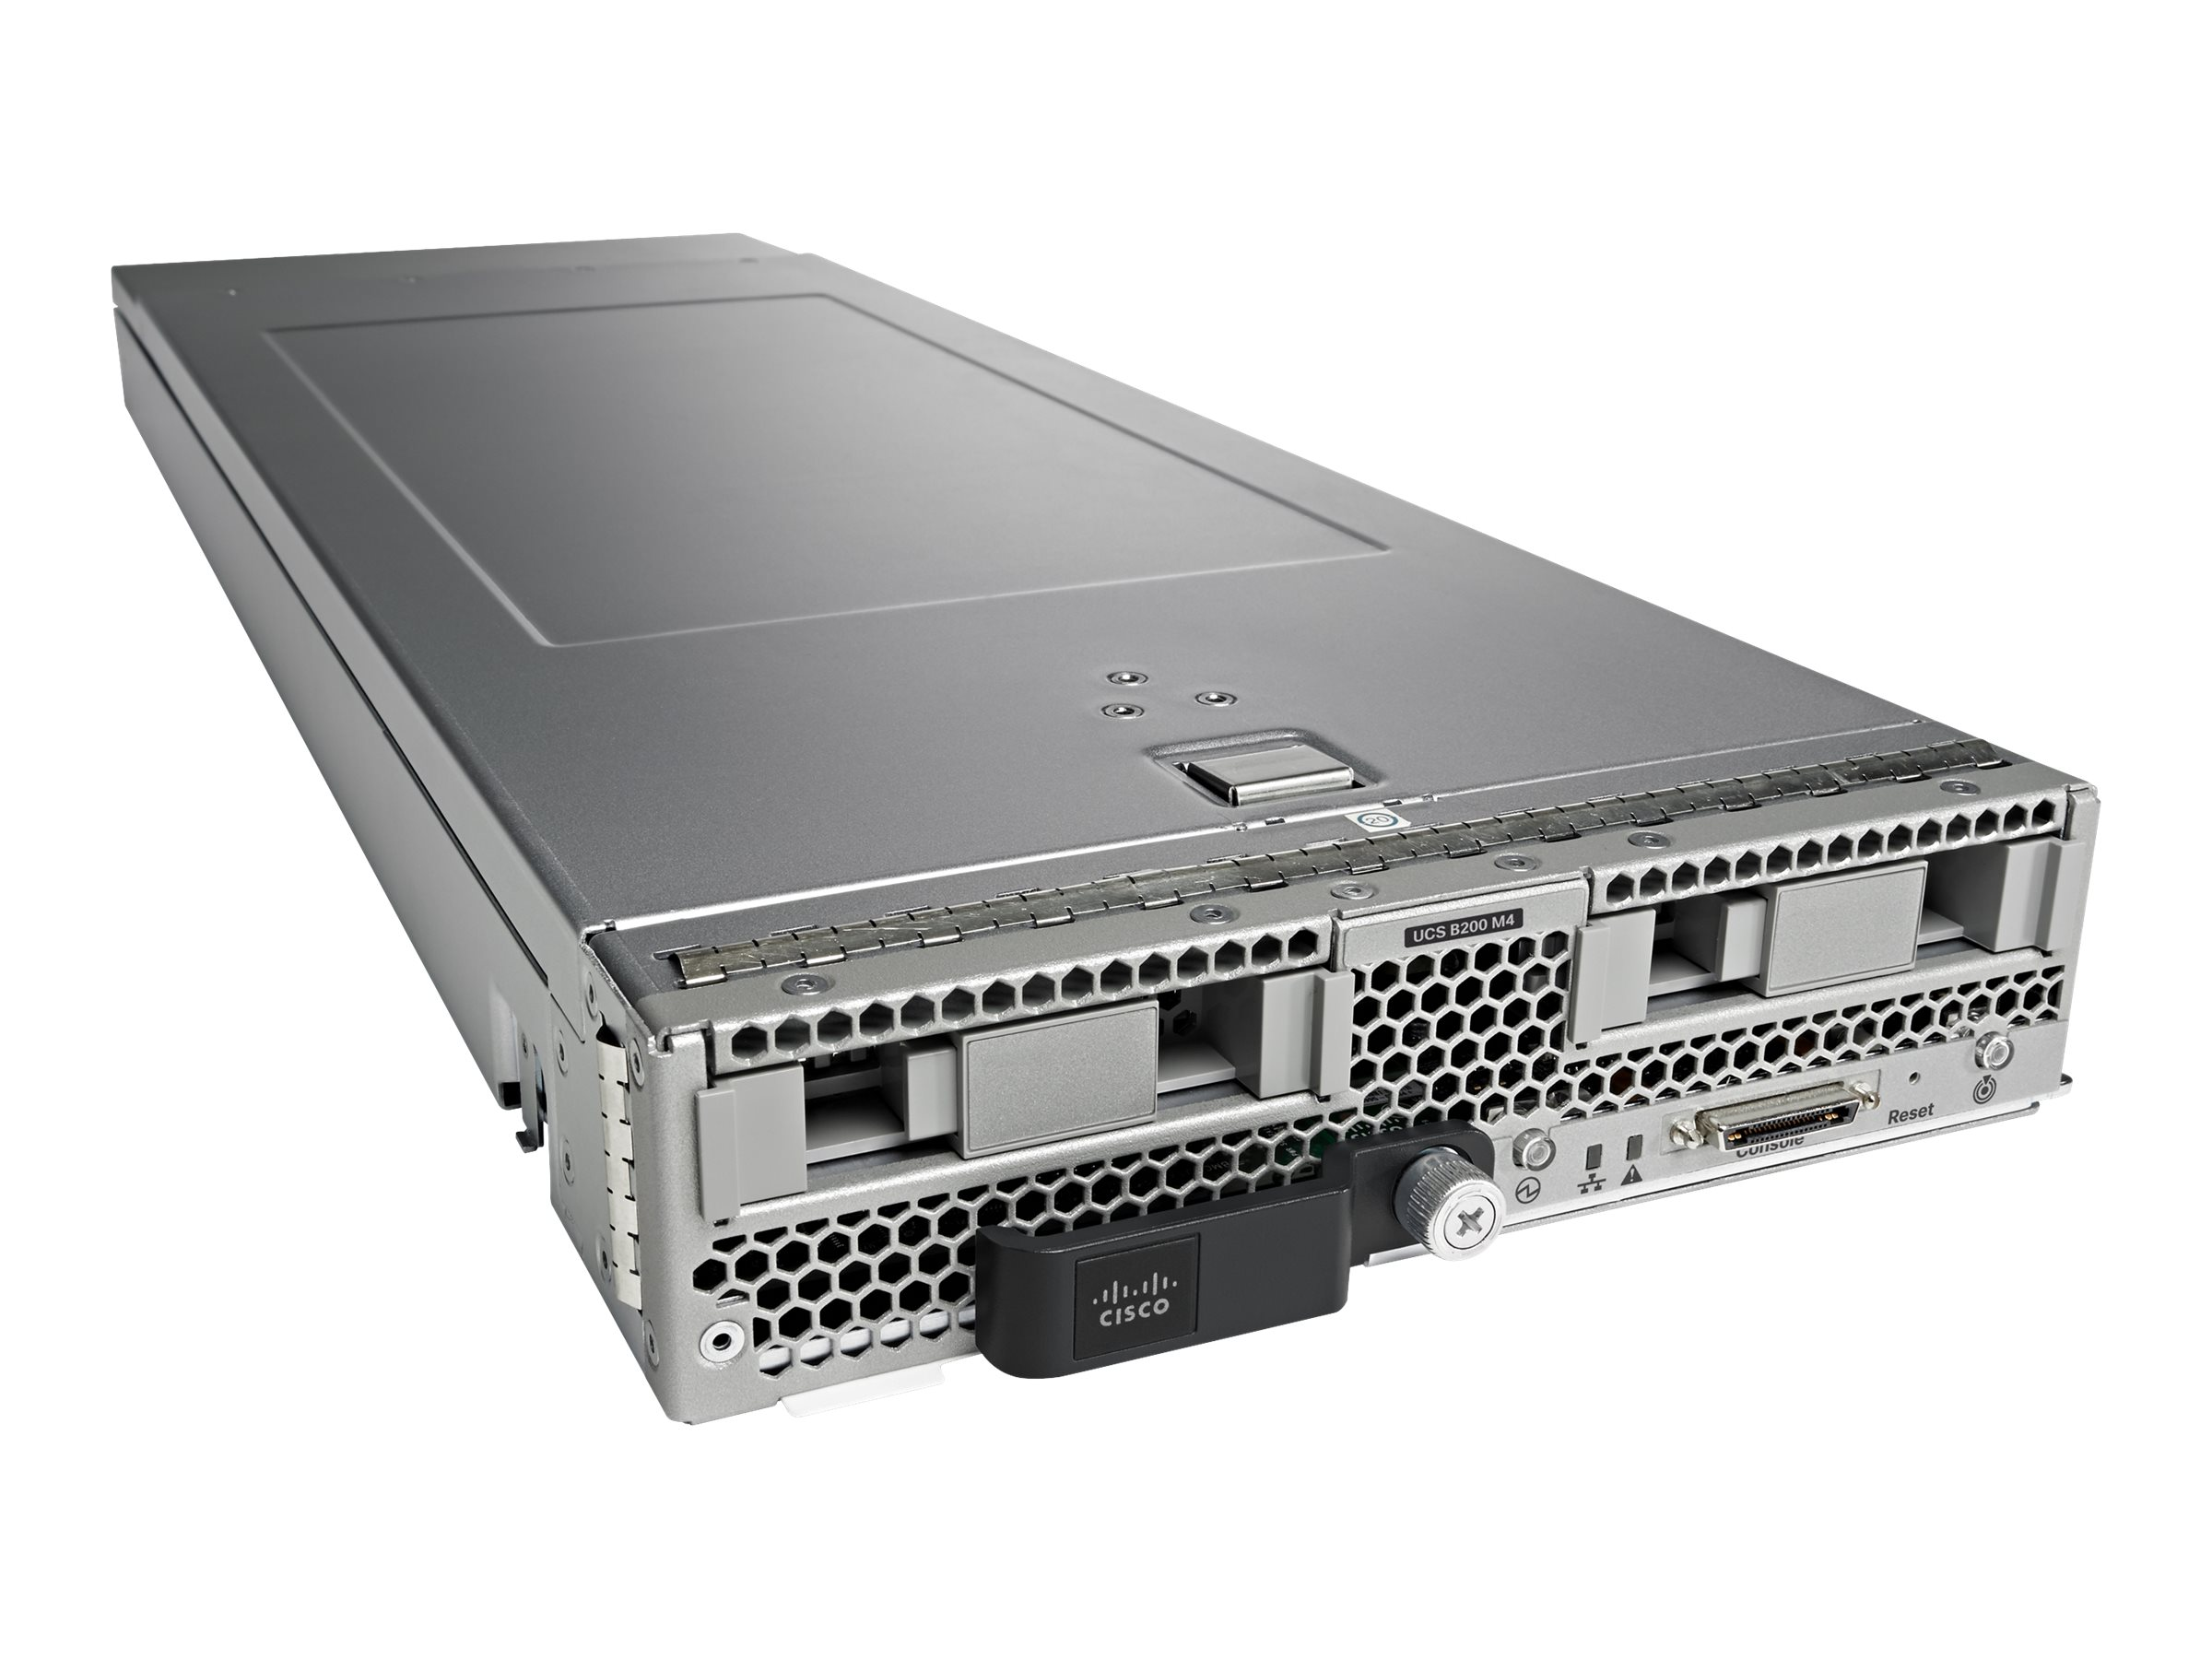 Cisco UCS Smart Play Select B200 M4 Blade Advanced 1 (2x)E5-2690 v3 256GB VIC1340, UCS-SPL-B200M4-A1